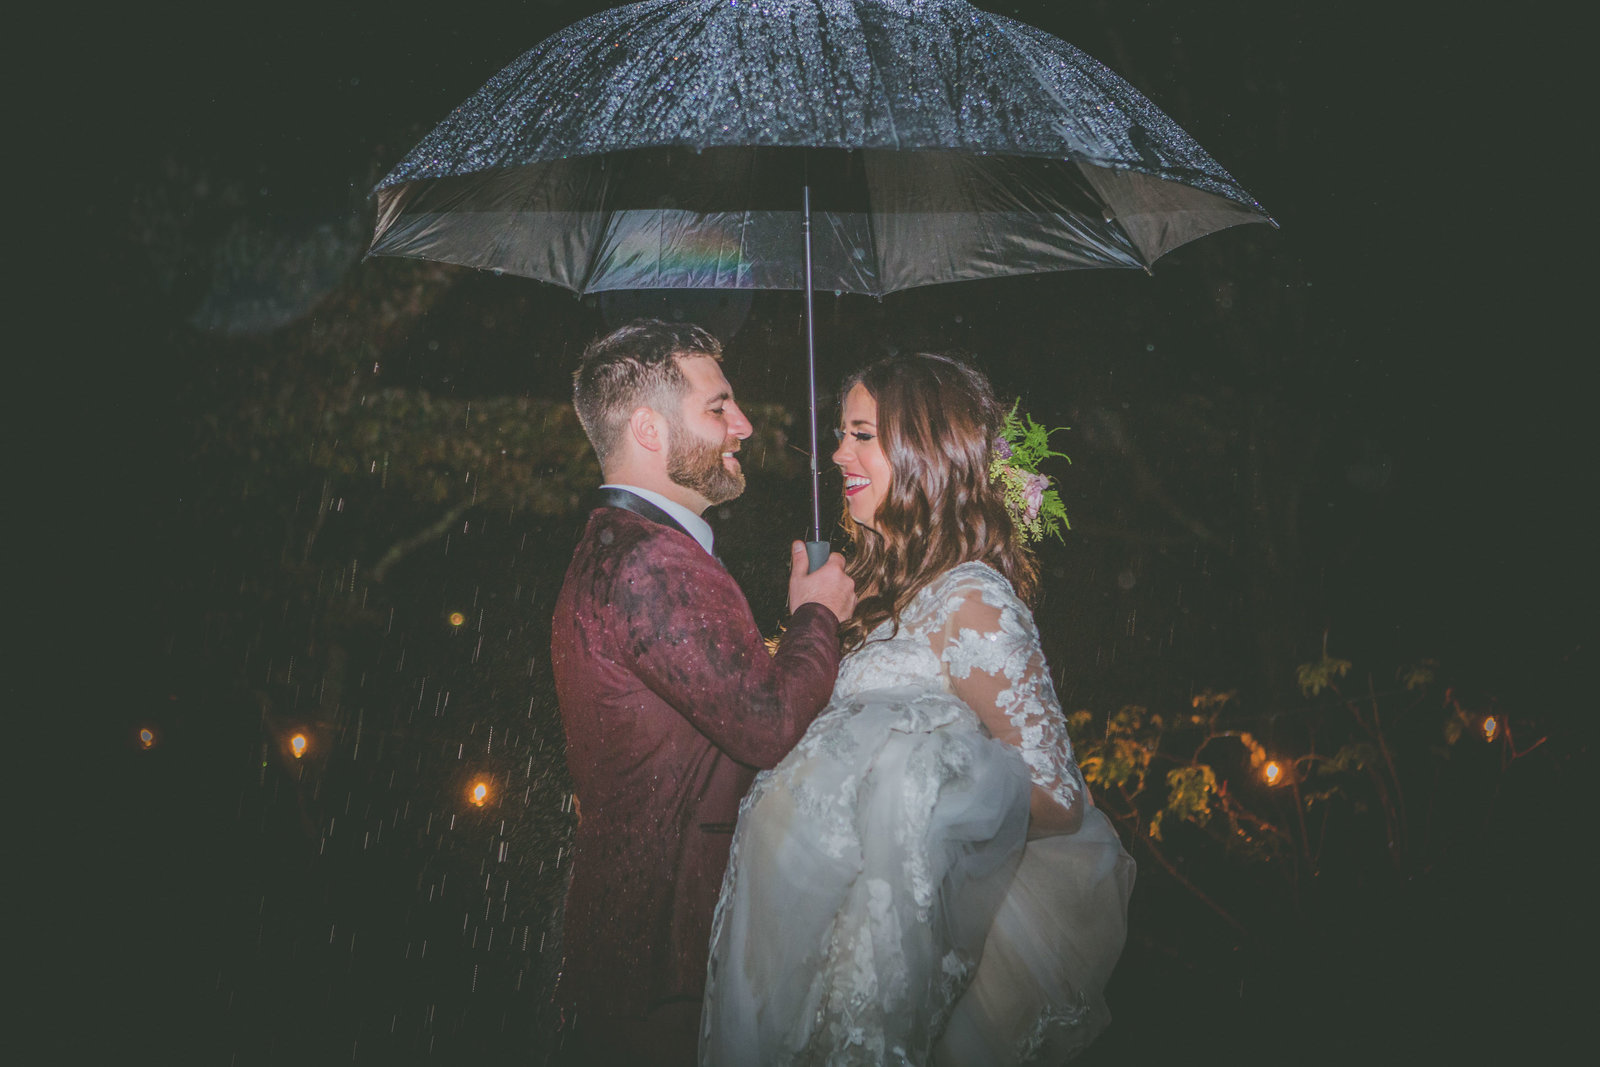 Groom holds umbrella for bride while raining at night.